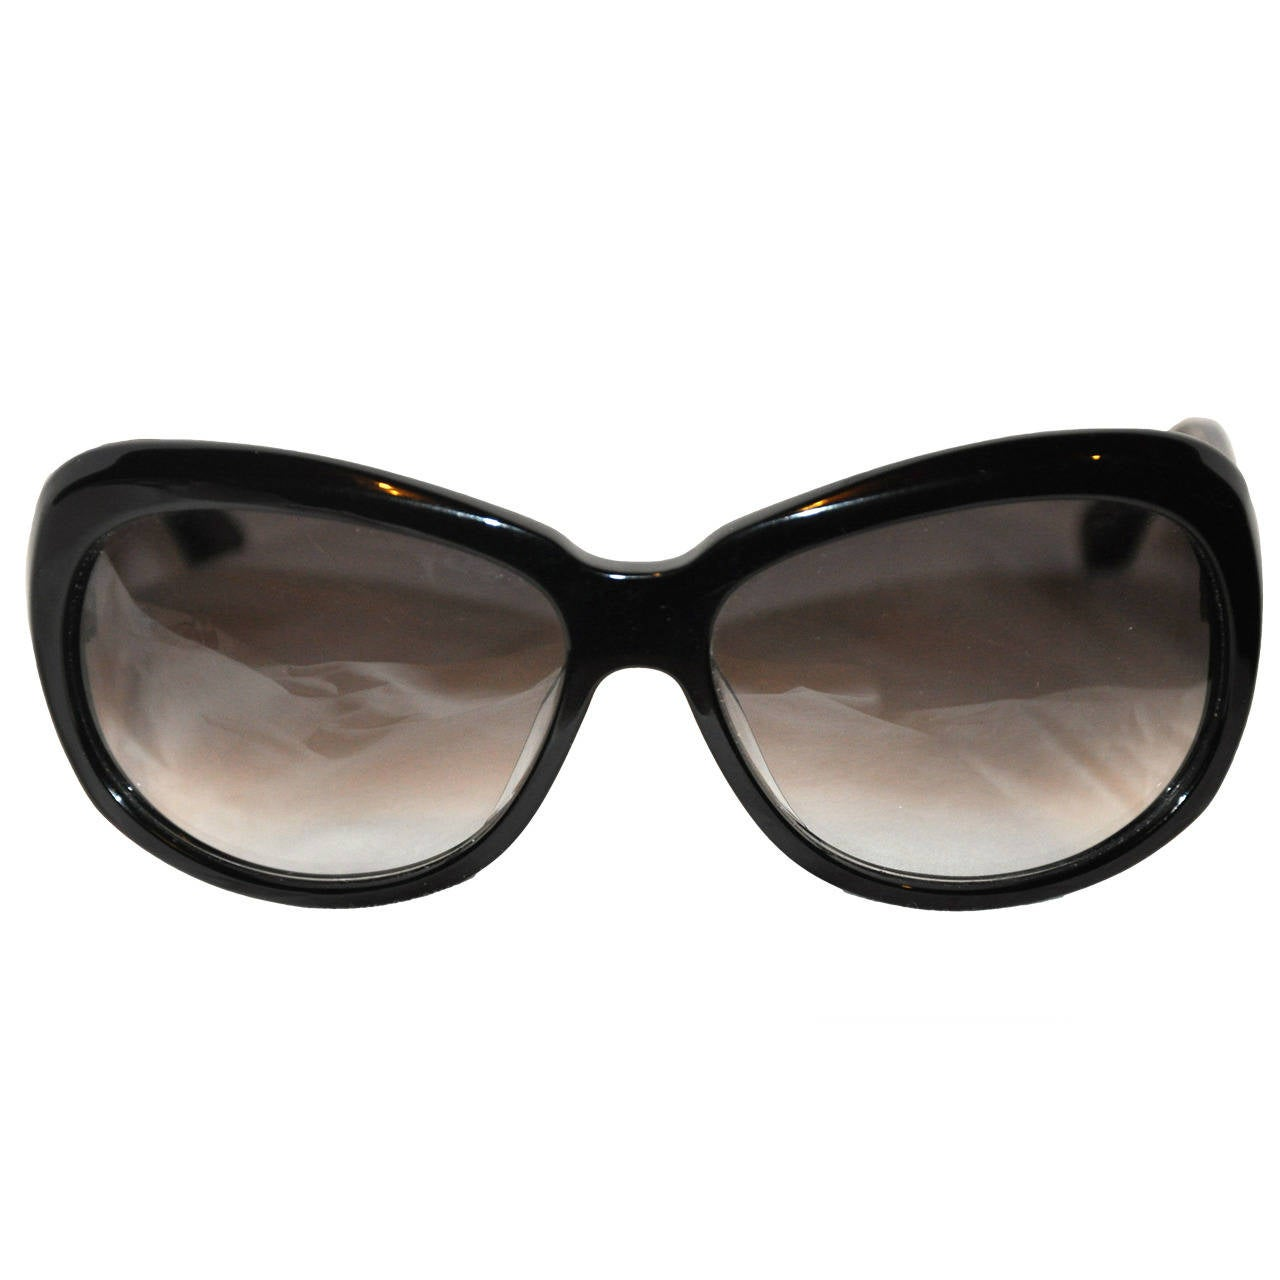 DITA Huge Black Lucite with Silver Hardware Sunglasses For Sale at ... e3f58acec